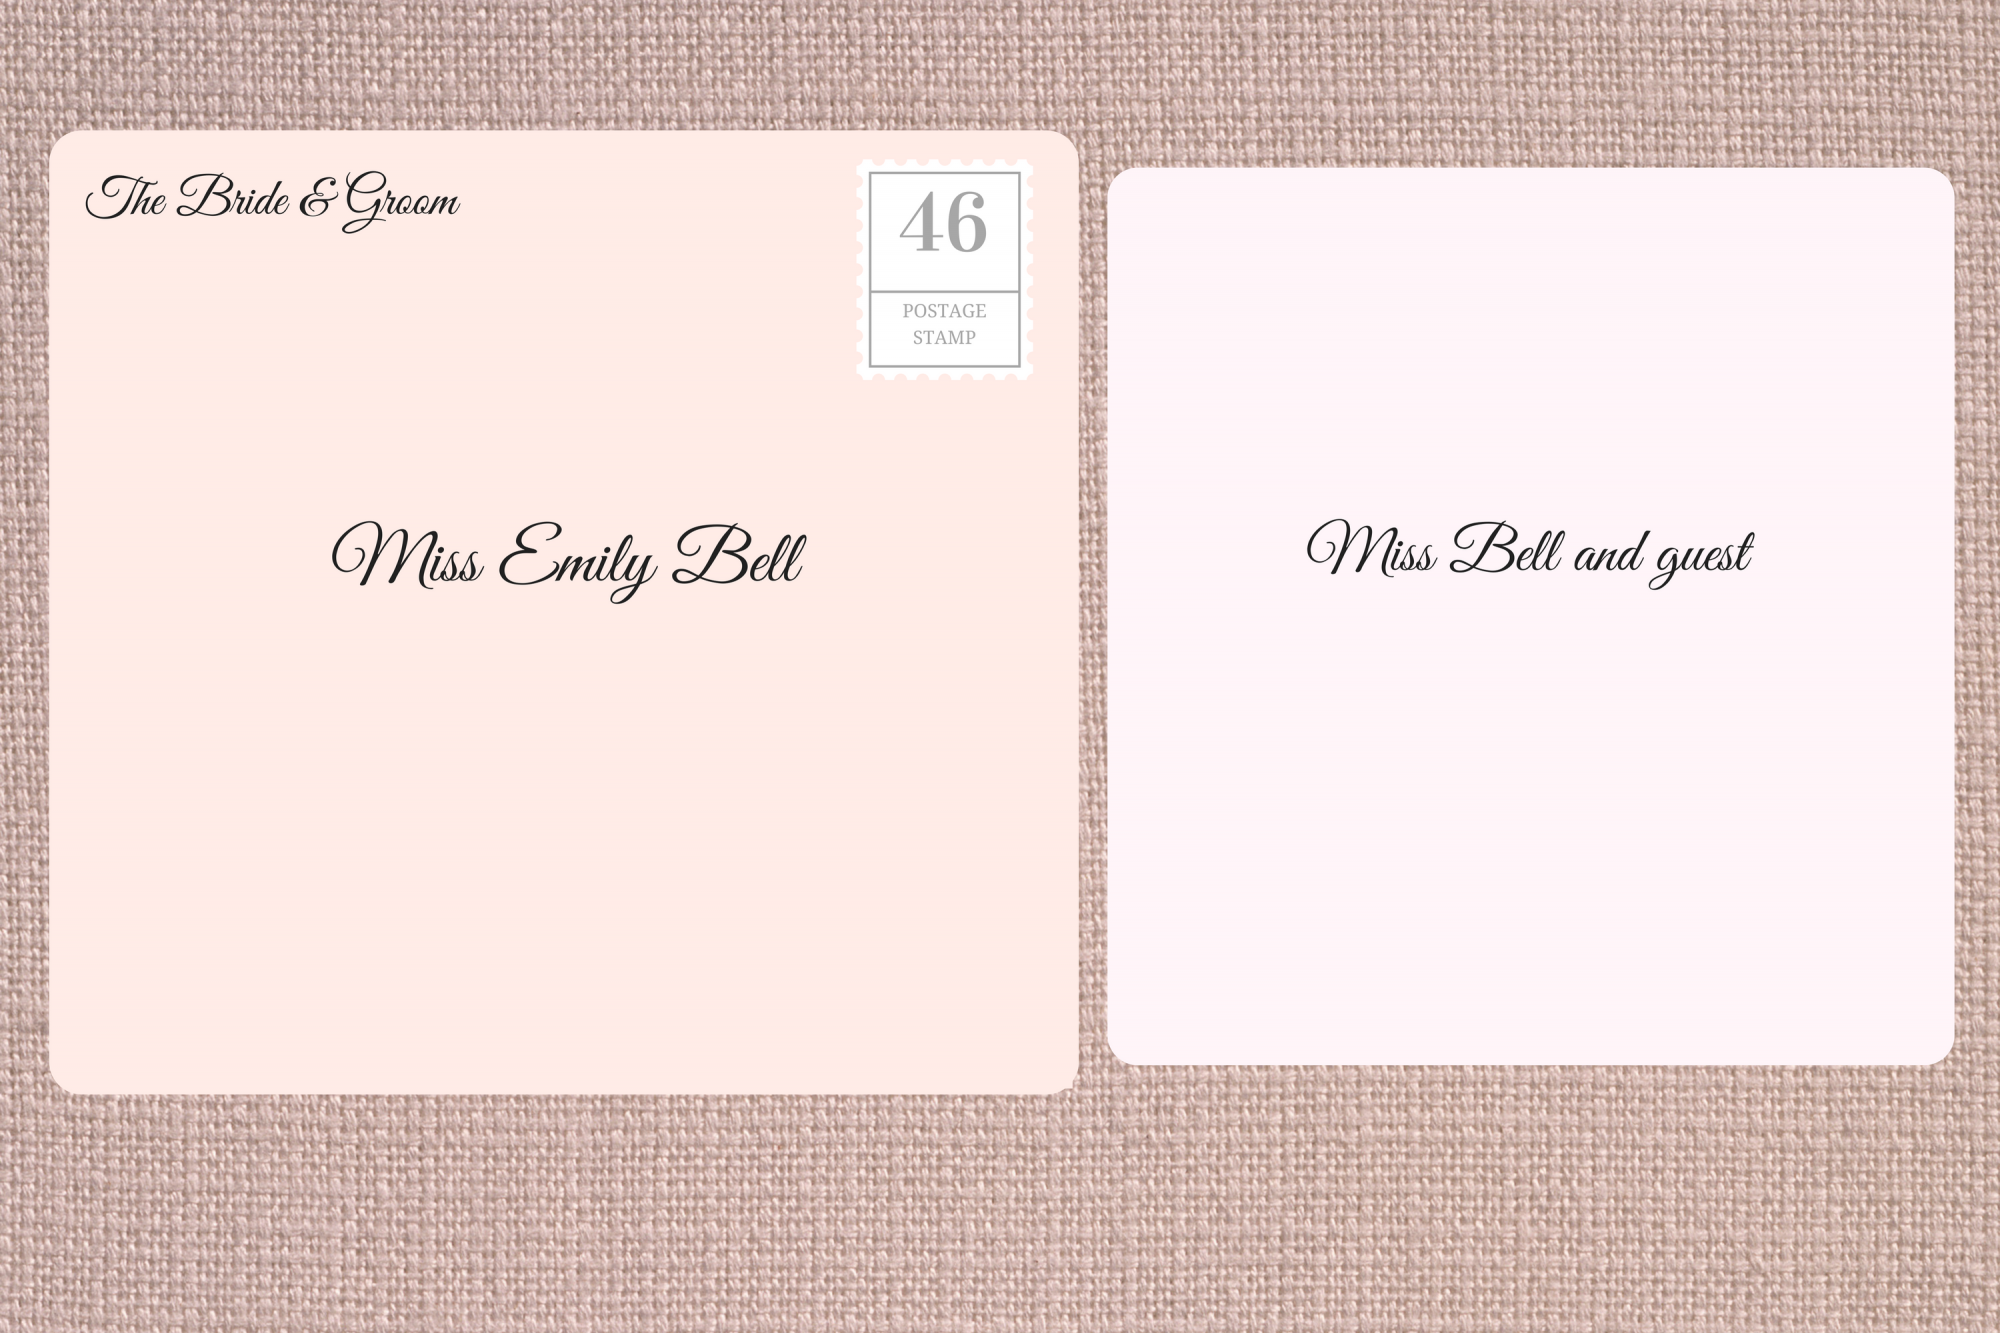 Addressing Double Envelope Wedding Invitations to Single Woman